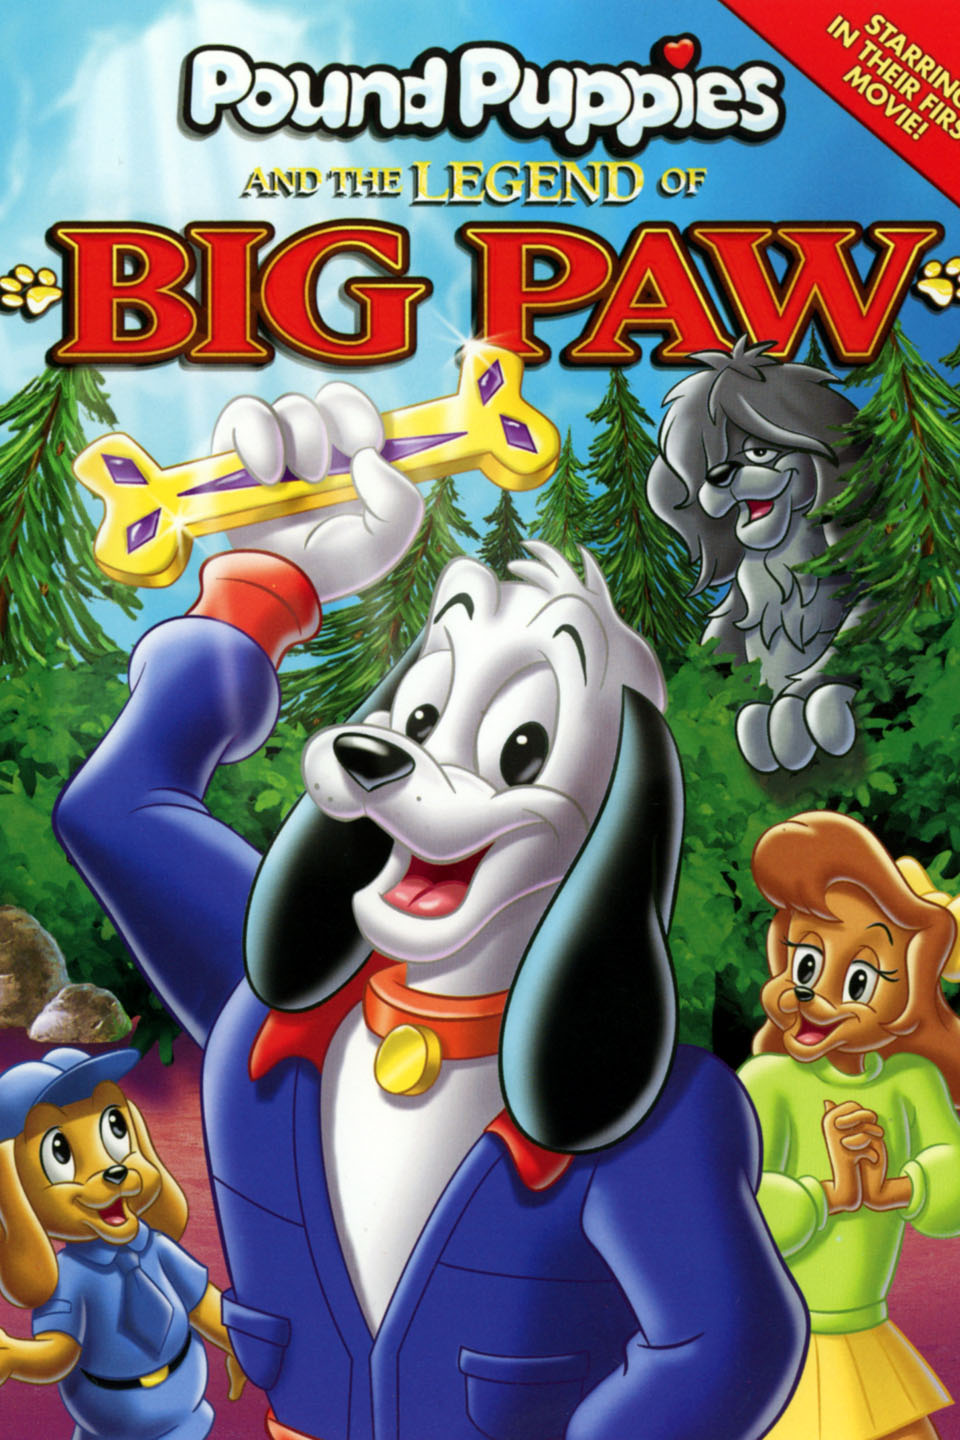 Pound Puppies and the Legend of Big Paw wwwgstaticcomtvthumbdvdboxart10704p10704d